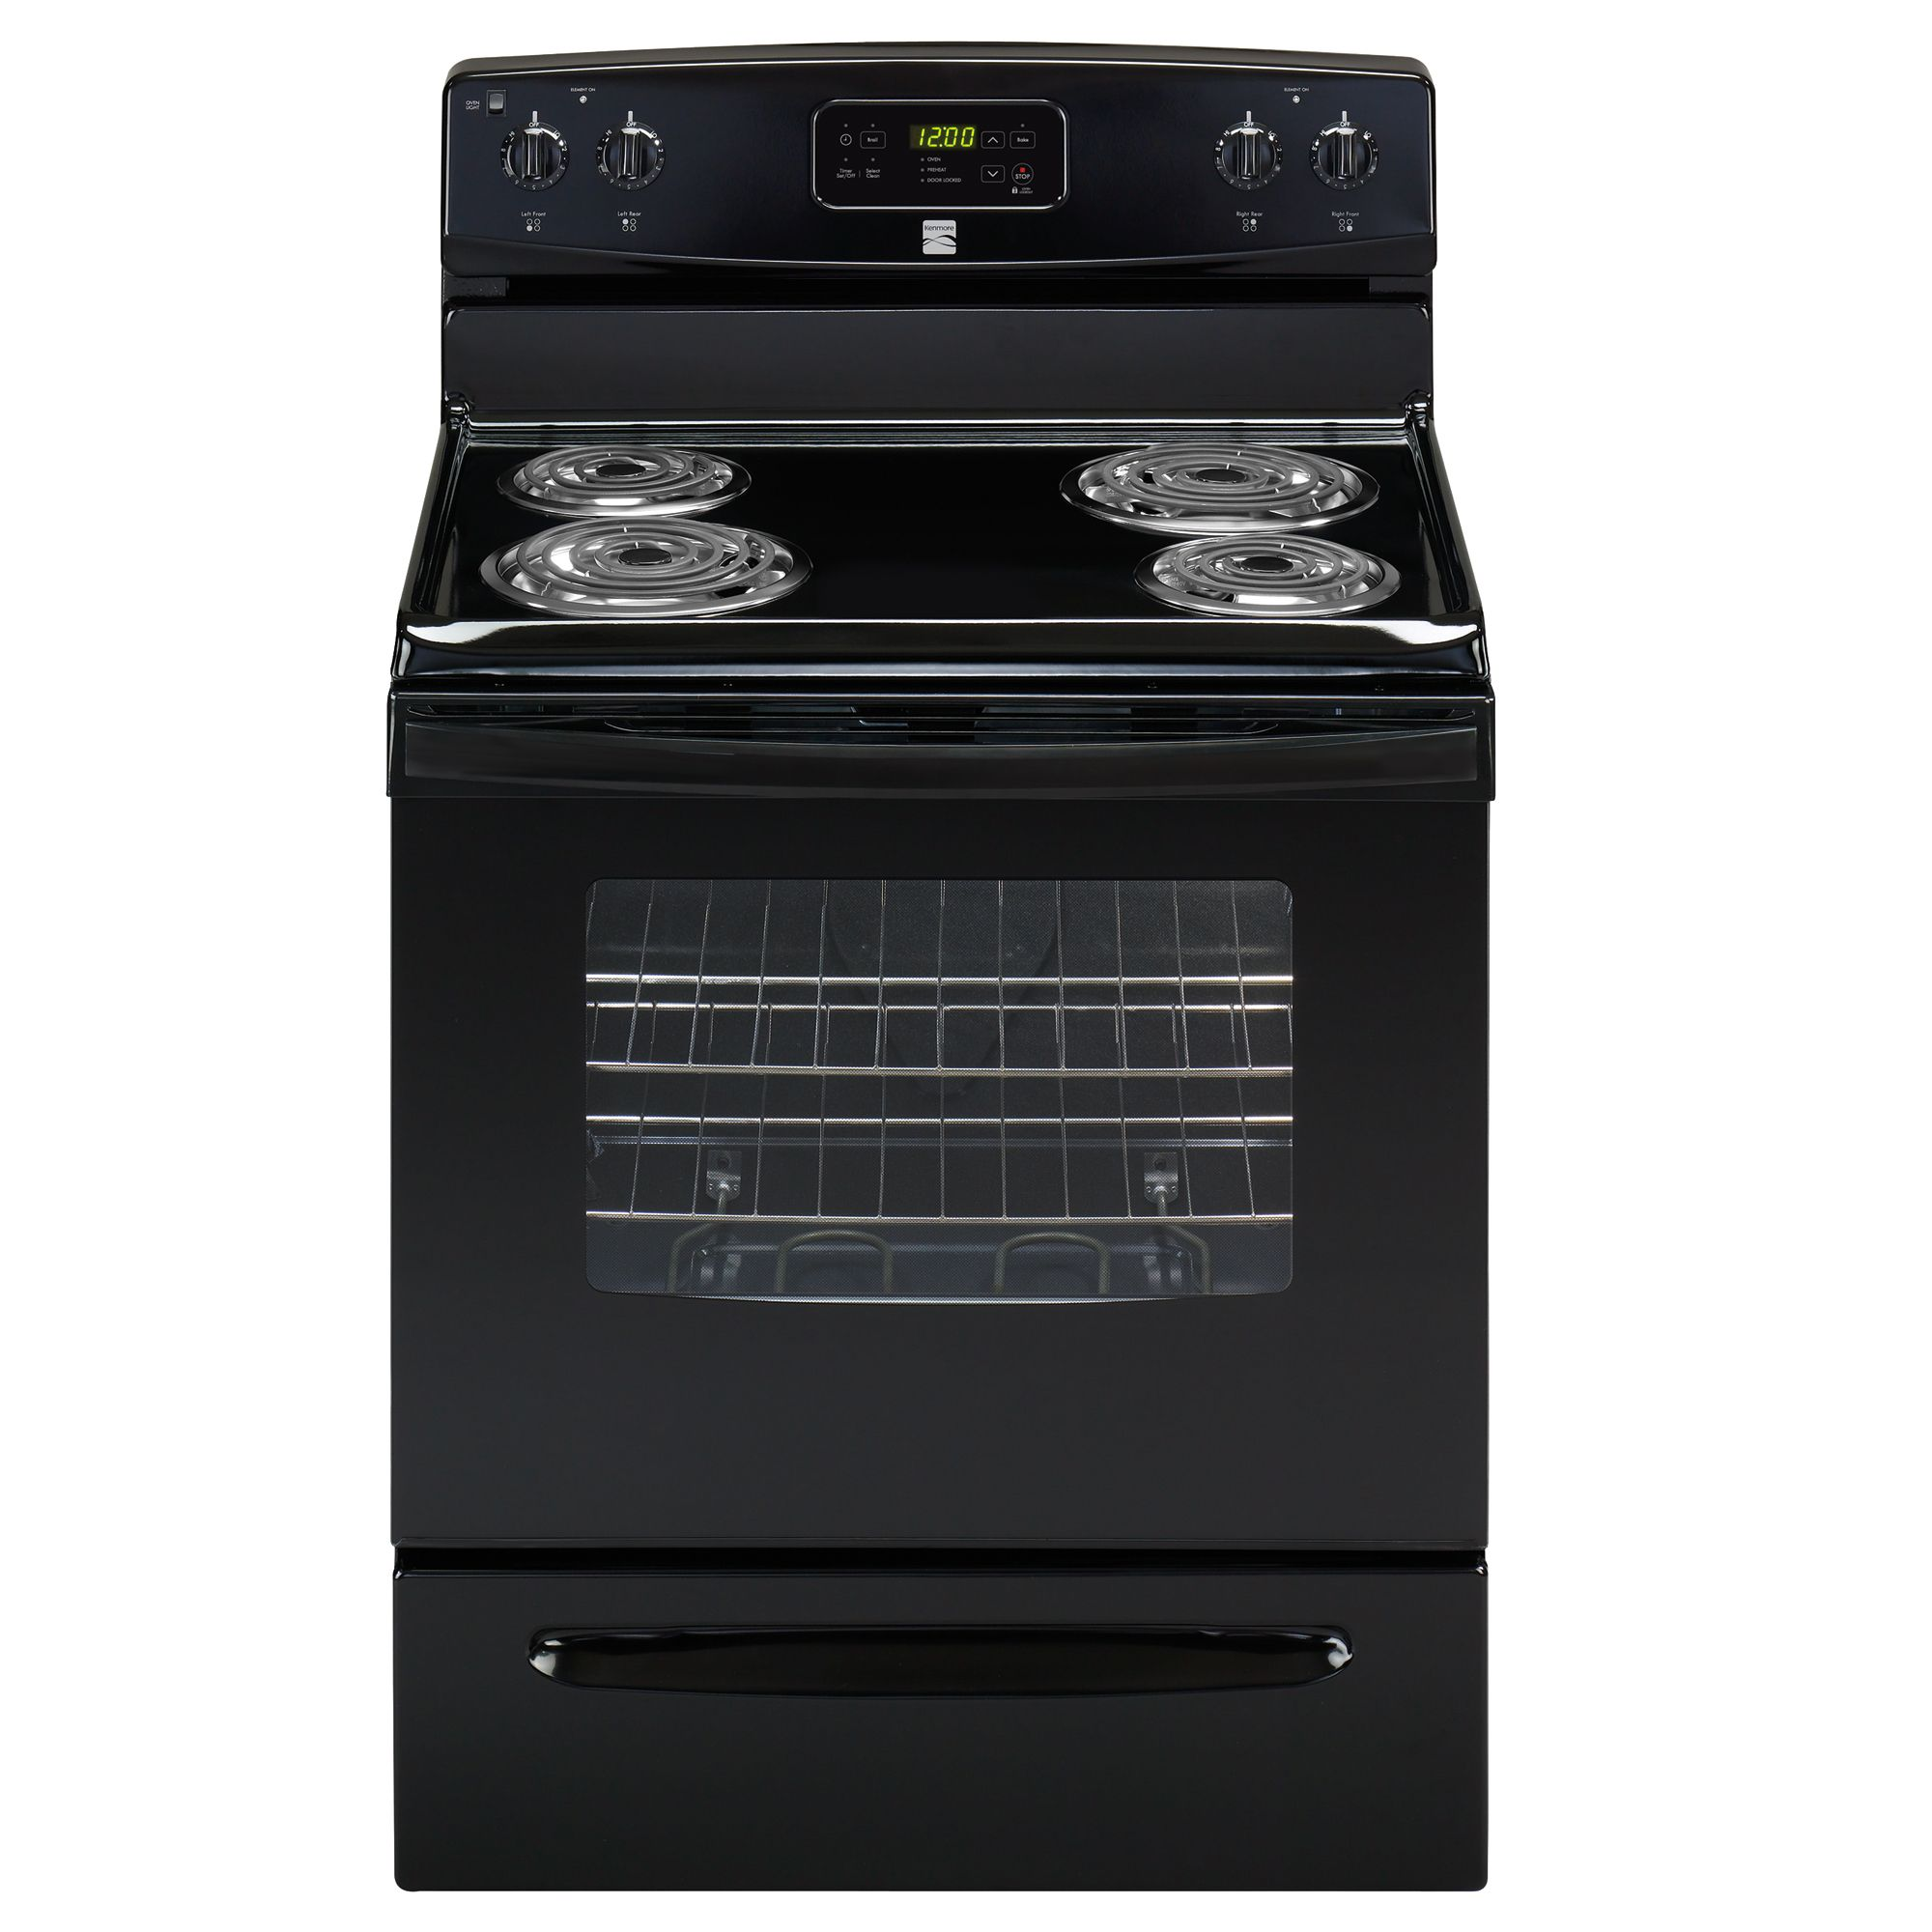 Kenmore Elite Electric Range Model 79046703606